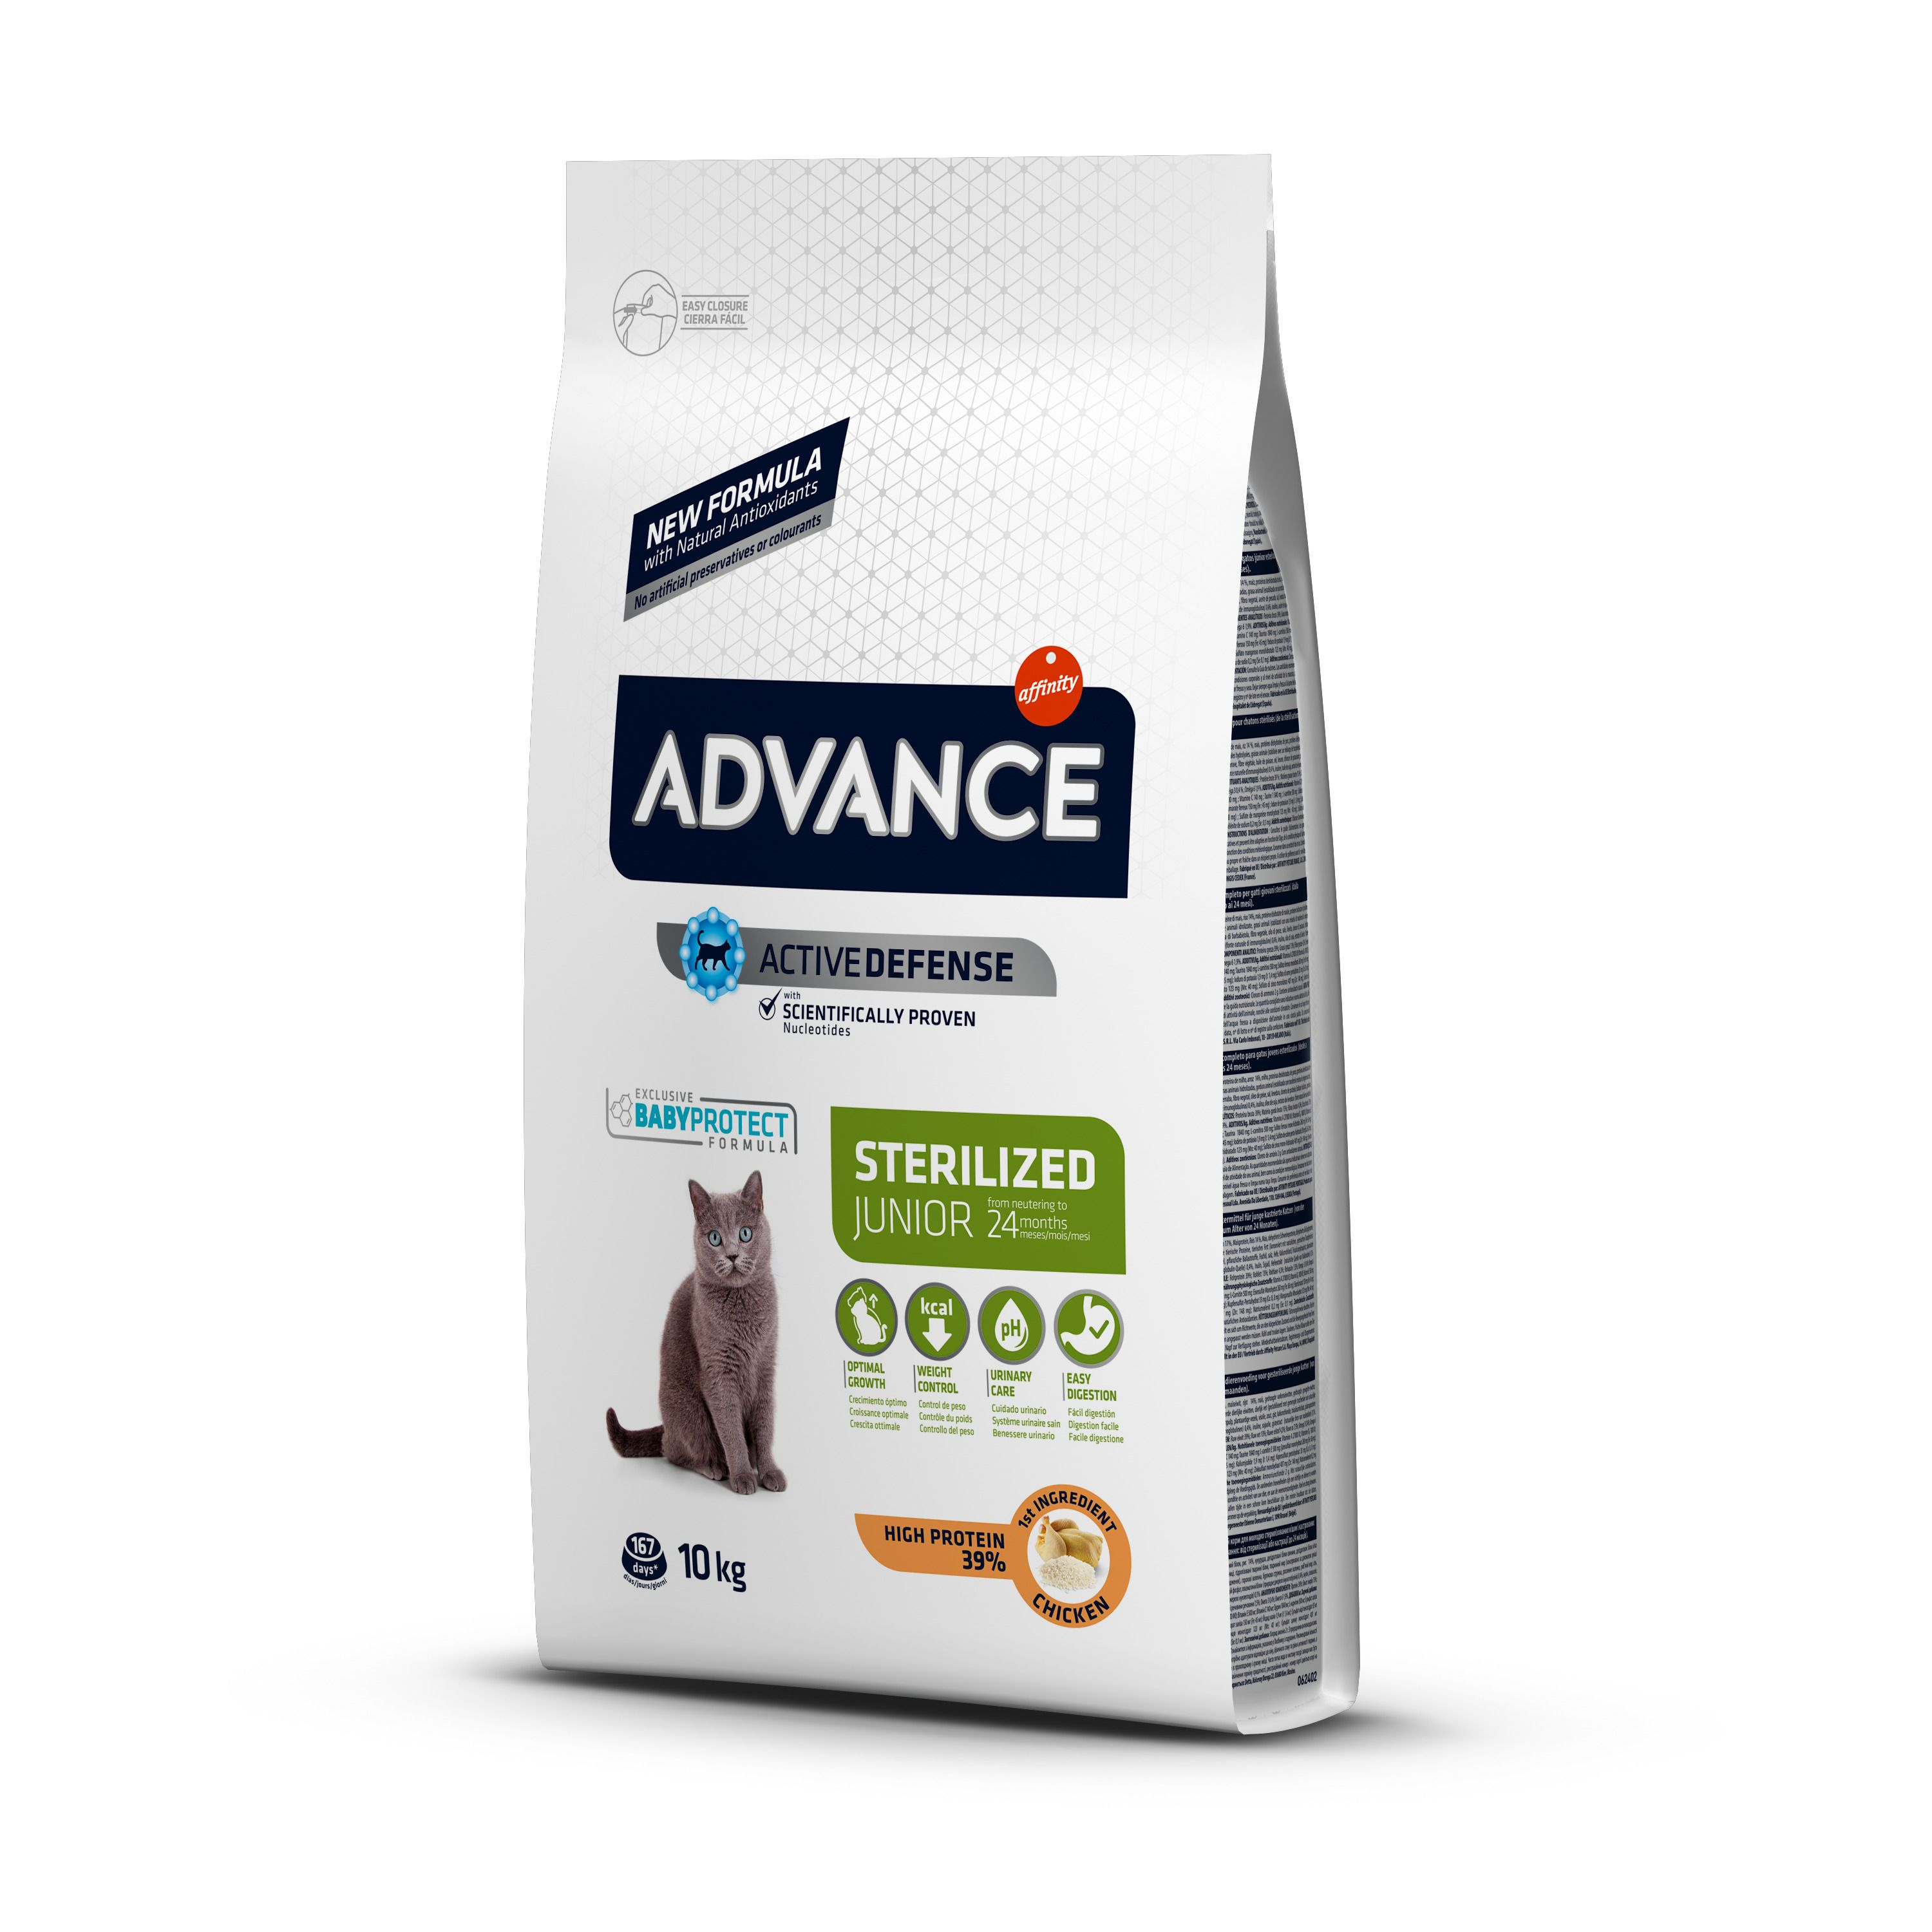 Kačių maistas Advance Sterilized senior 1,5kg